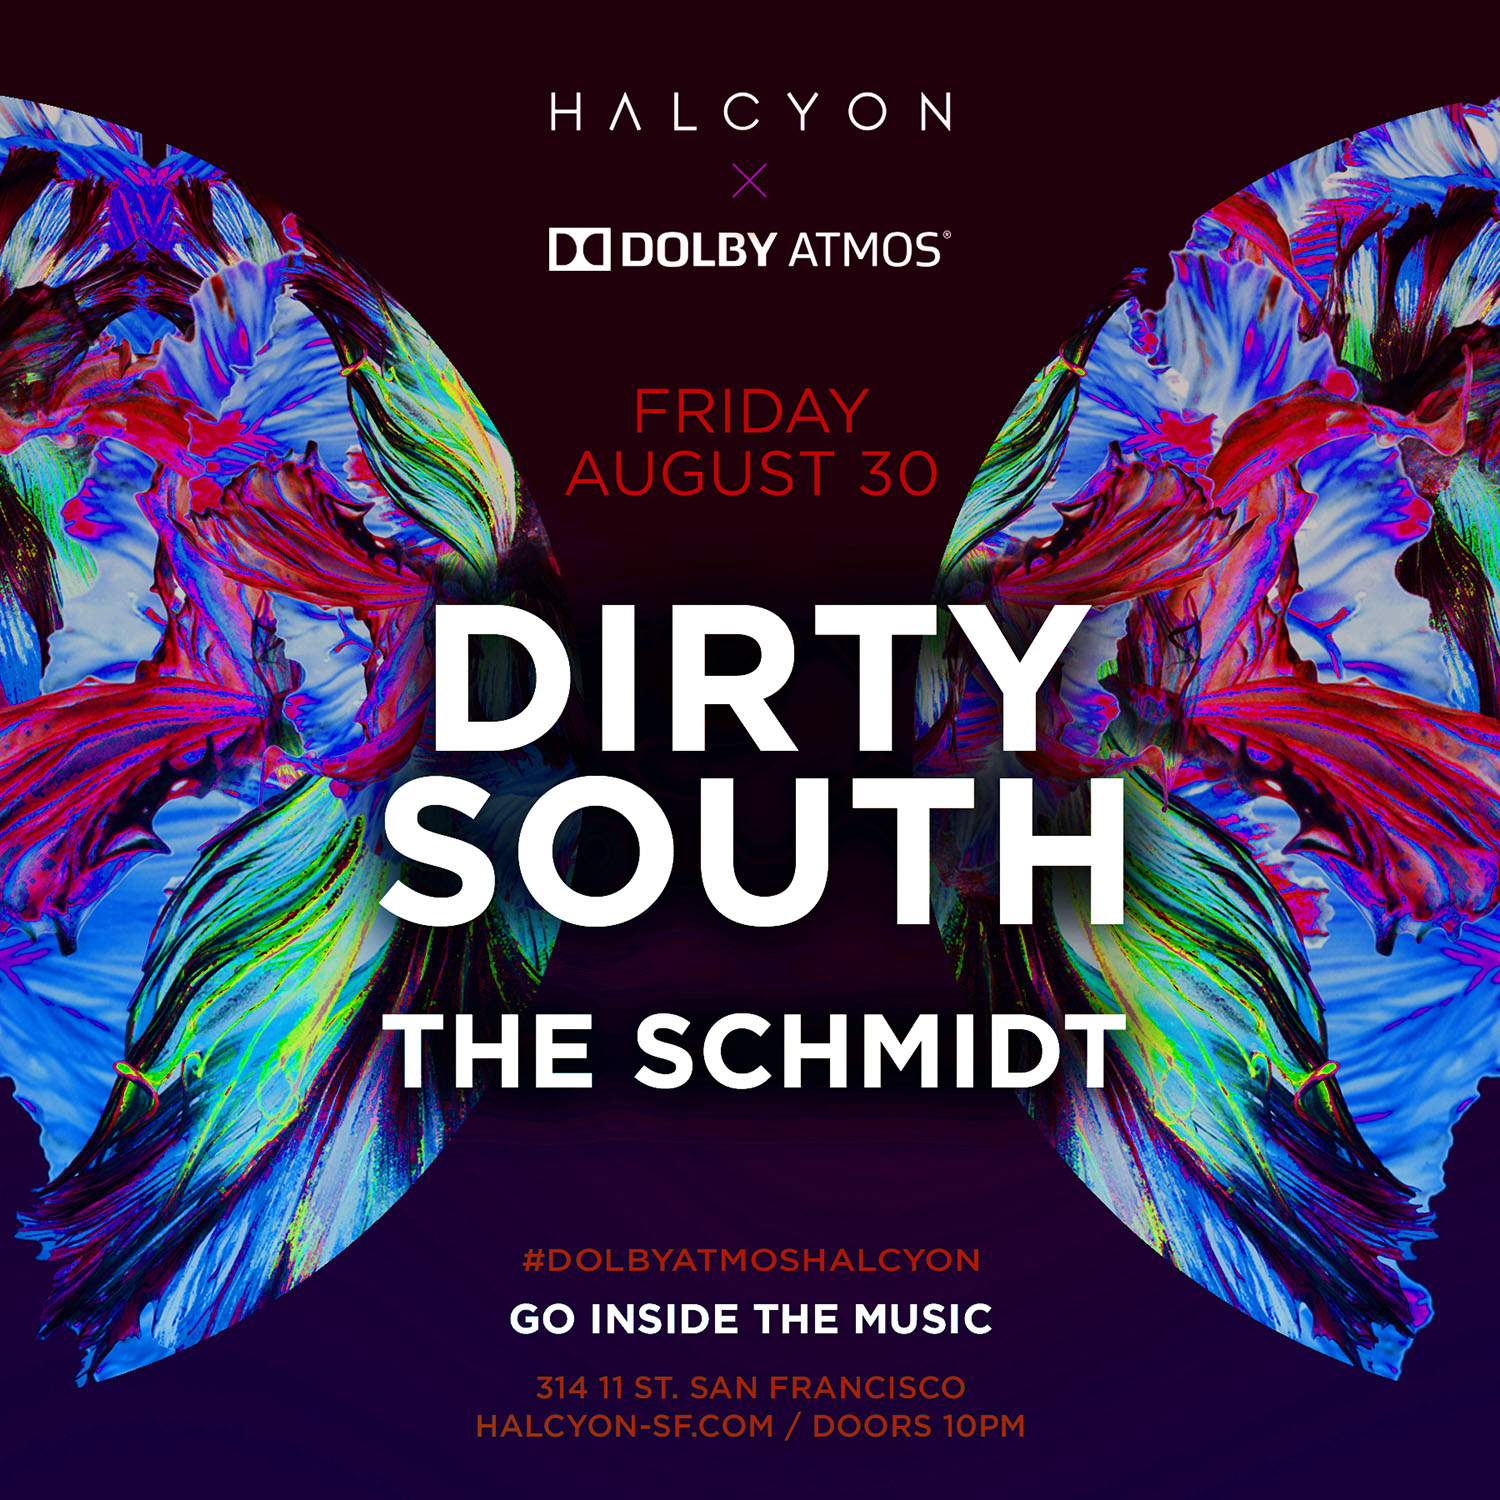 Fri Aug 30 – Dirty South X Dolby Atmos |